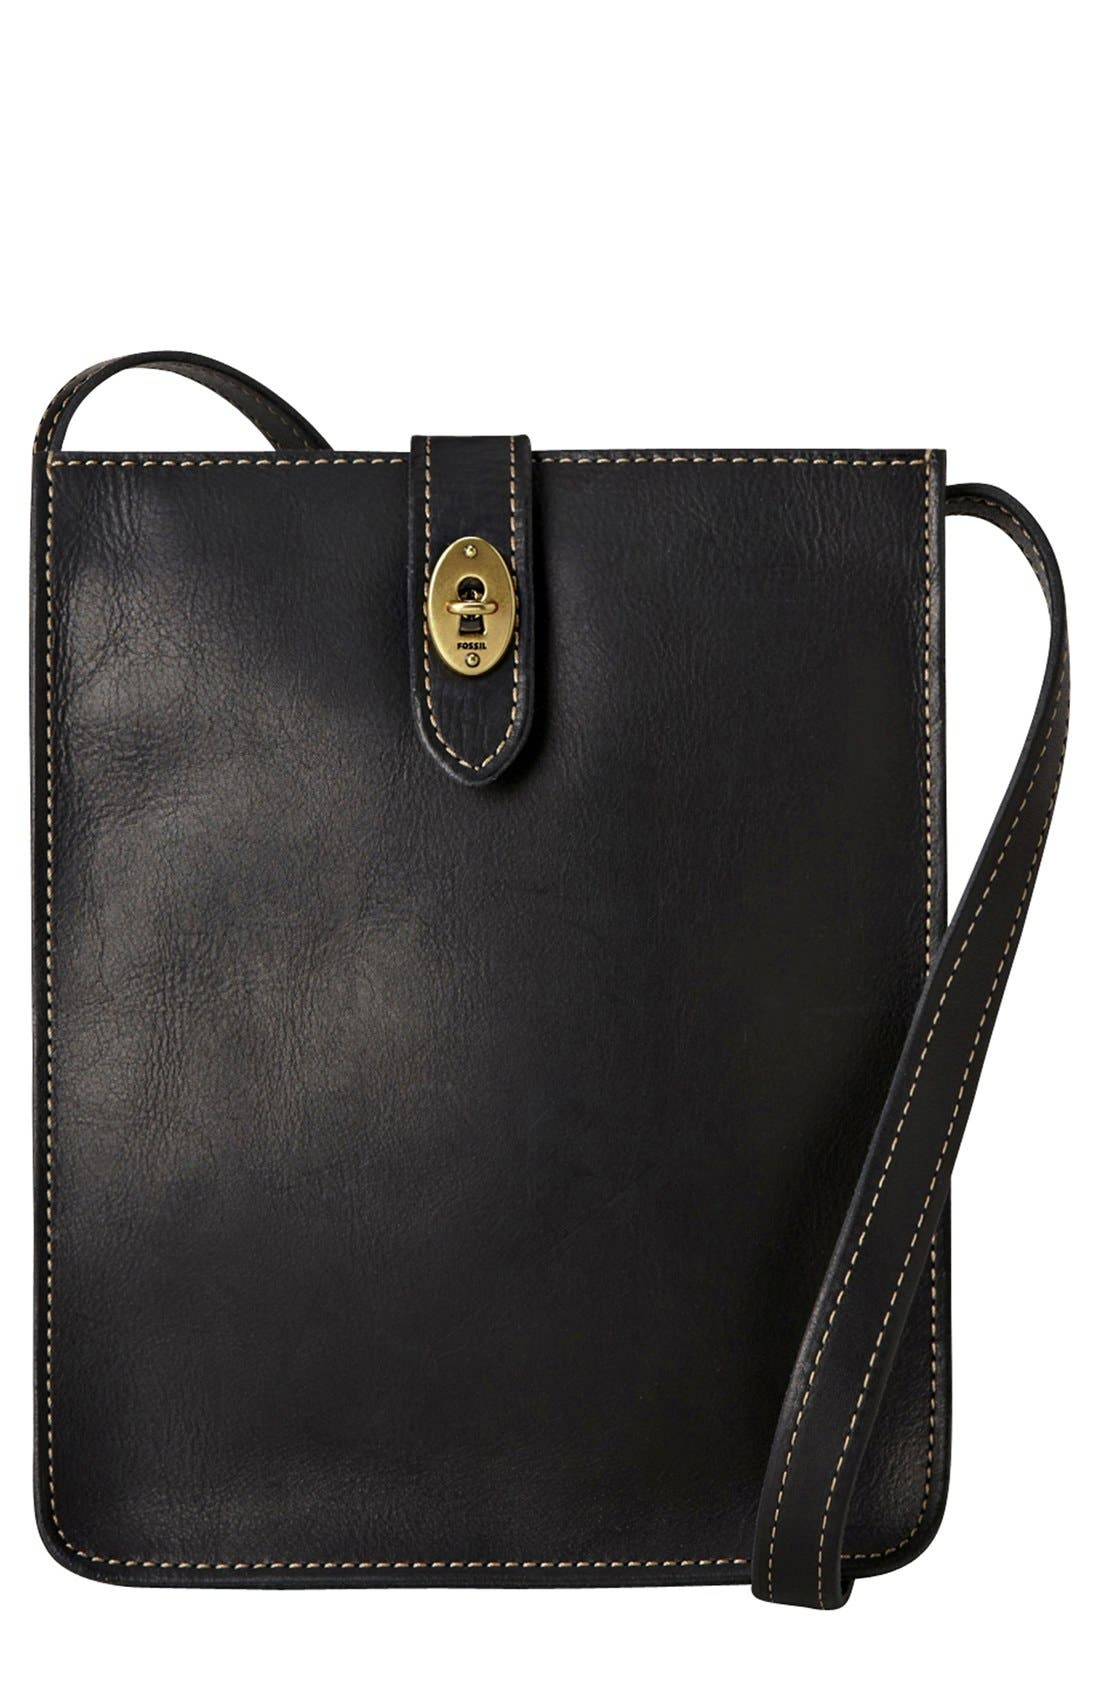 Alternate Image 1 Selected - Fossil 'Austin Slim' Crossbody Bag